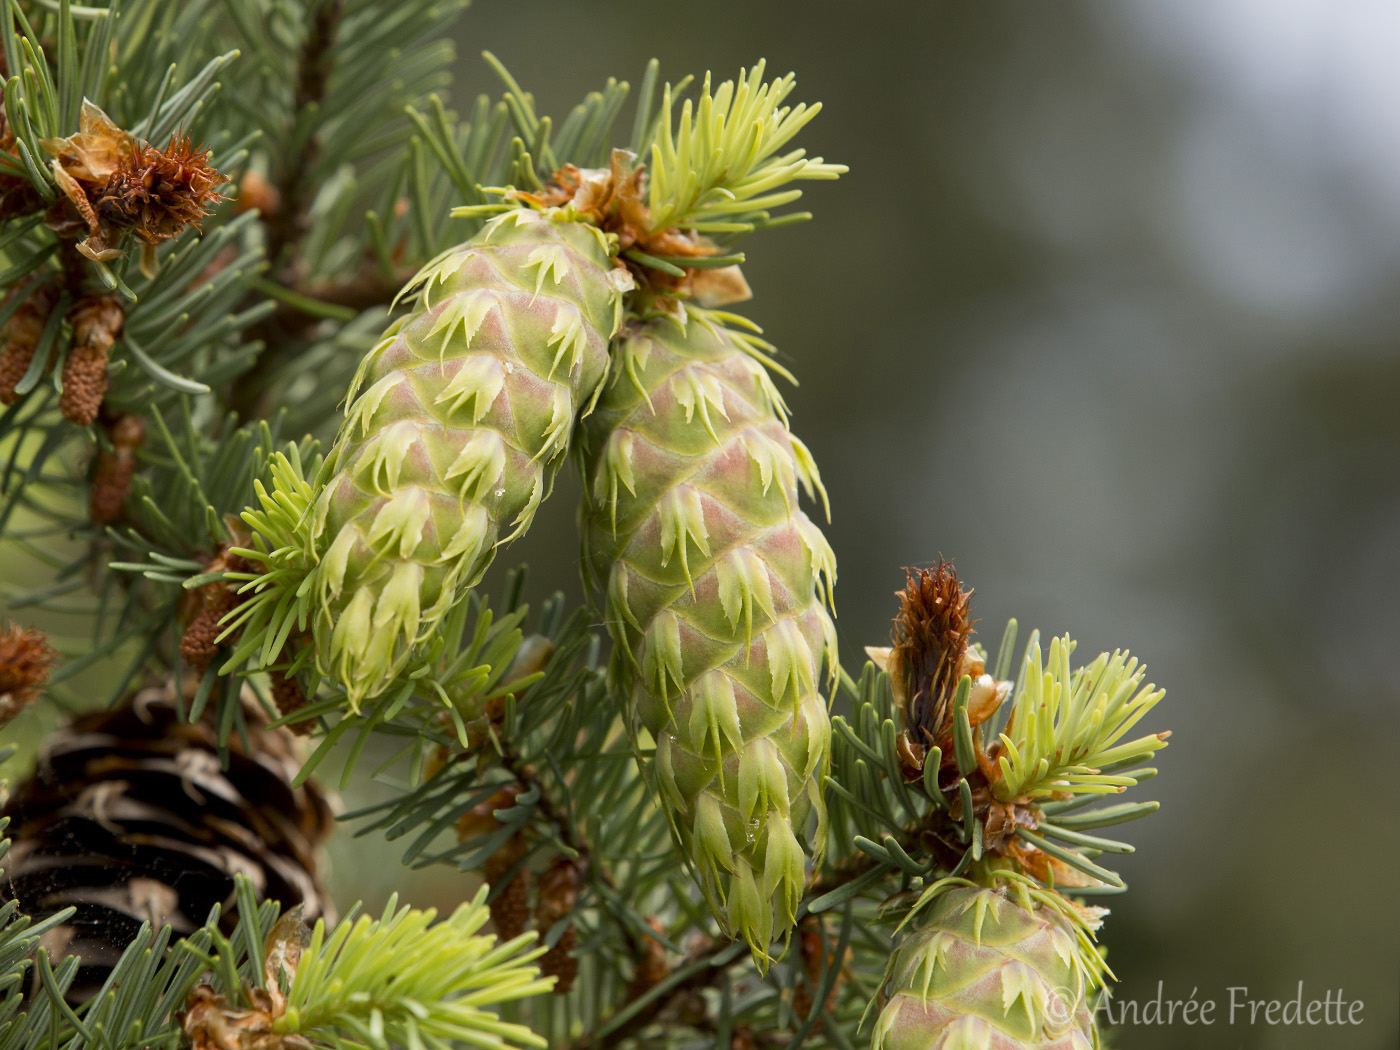 Douglas Fir female cones. Photo by Andrée Fredette